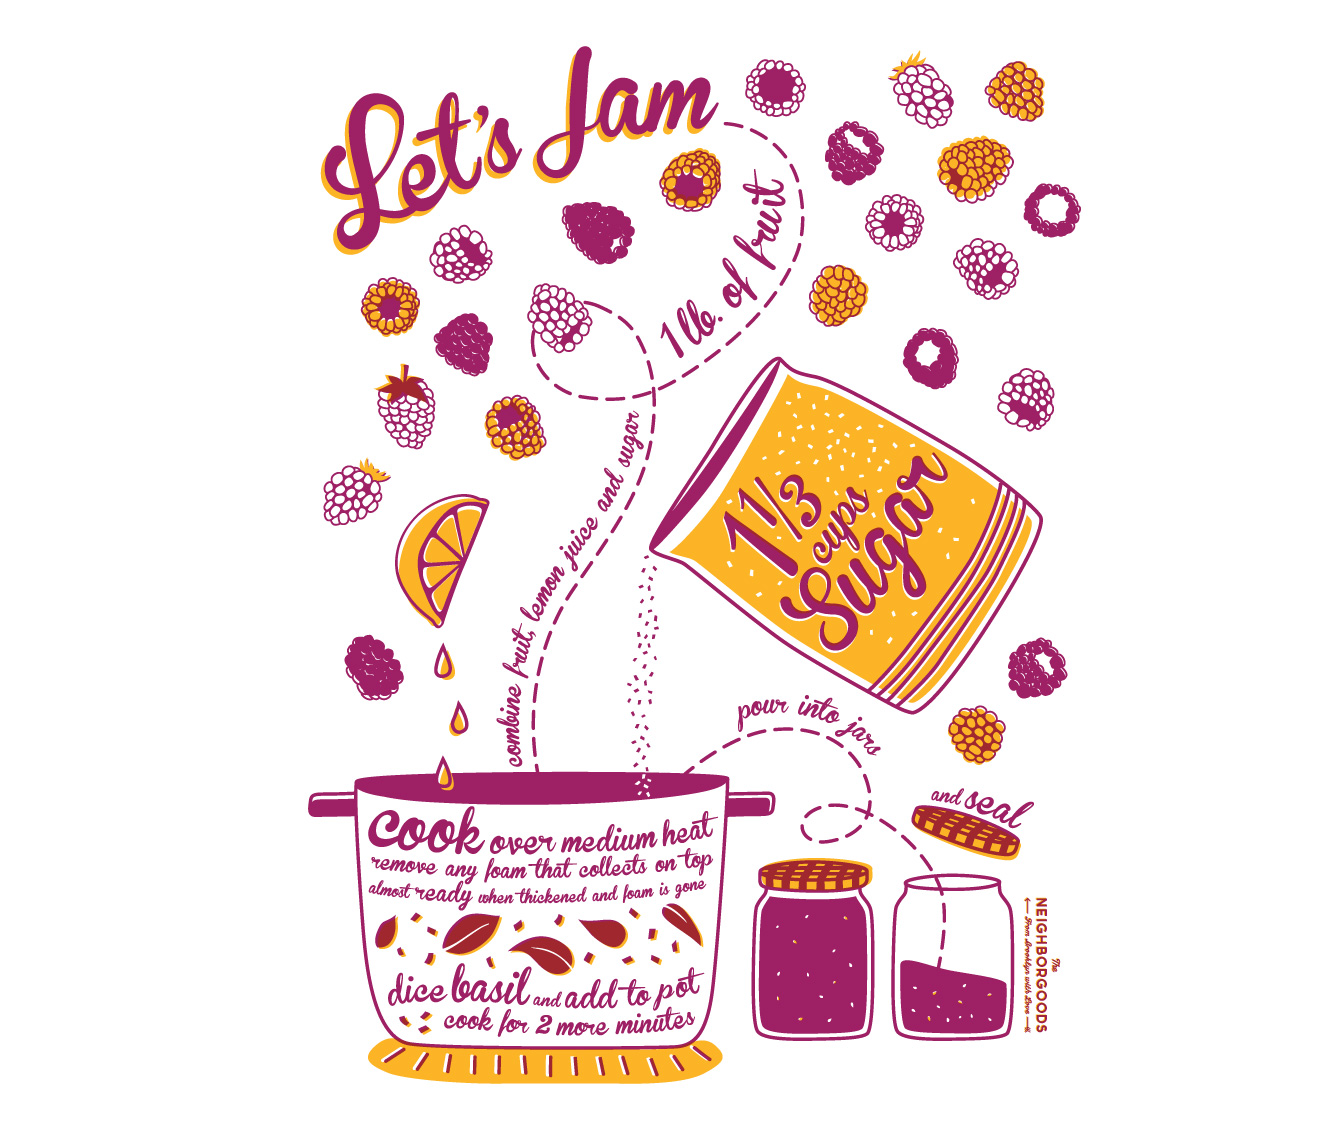 homemade jam illustration